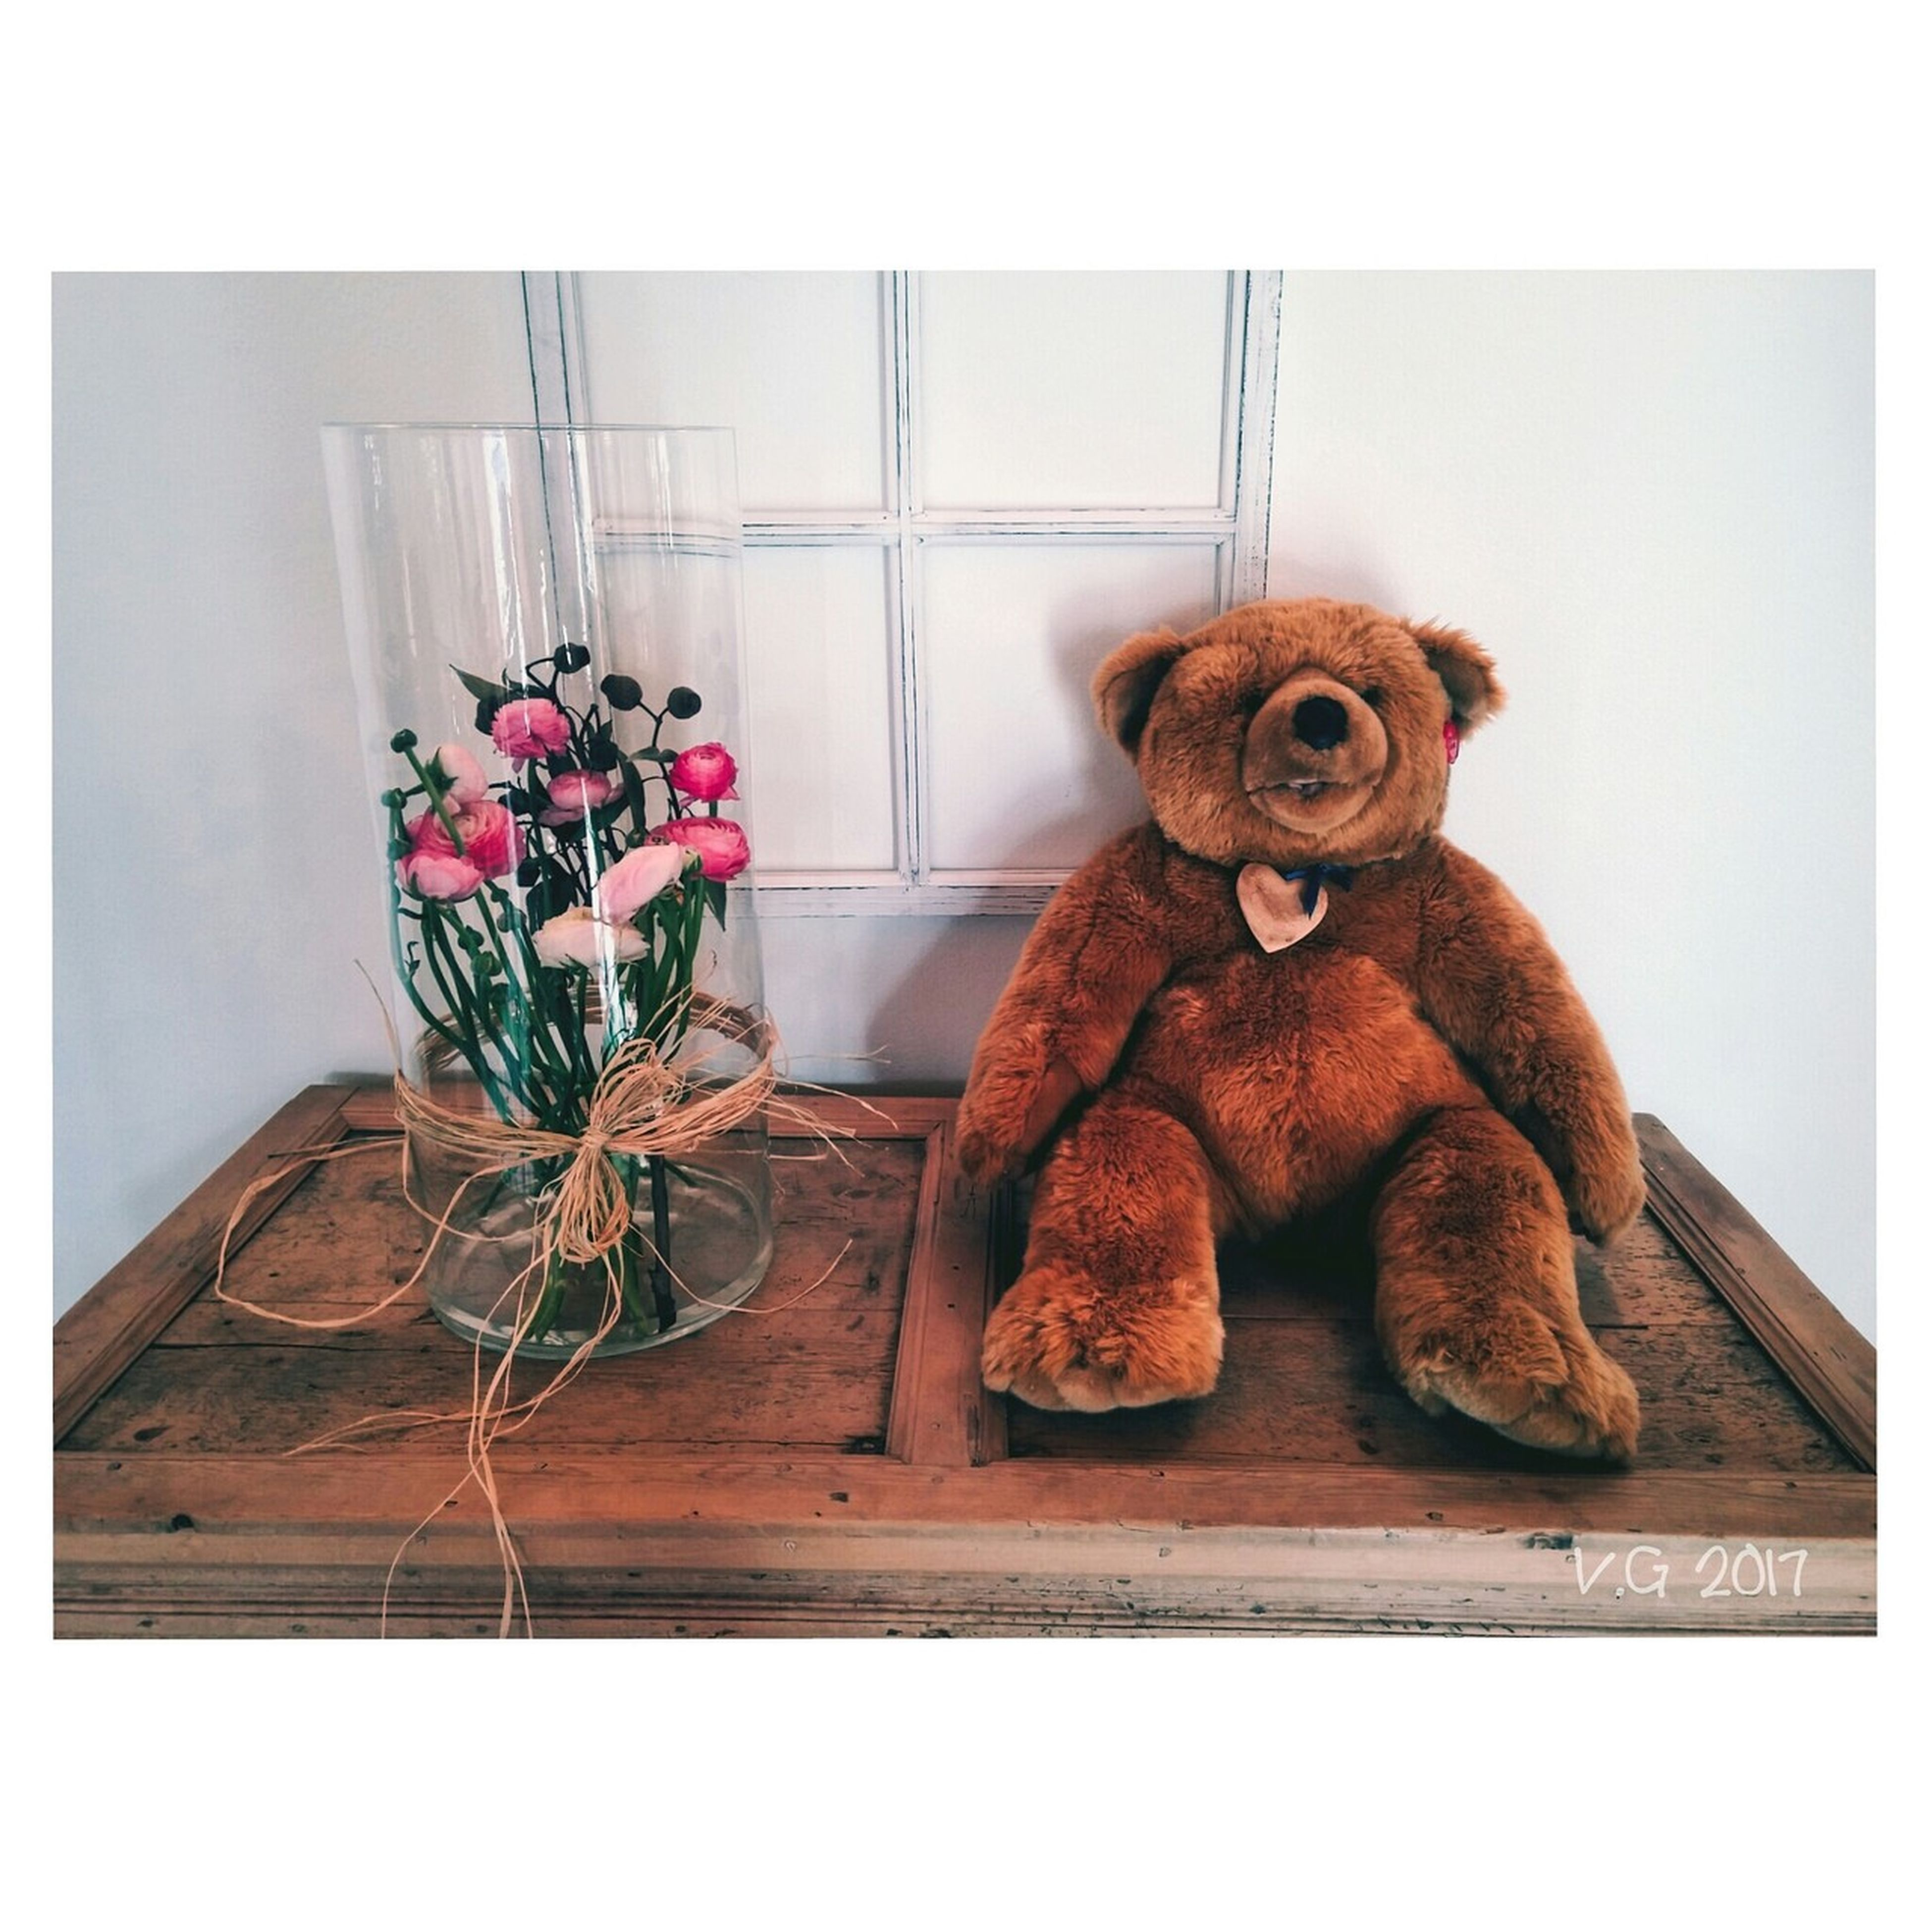 teddy bear, toy, stuffed toy, animal representation, auto post production filter, indoors, no people, childhood, home interior, nature, stuffed, close-up, day